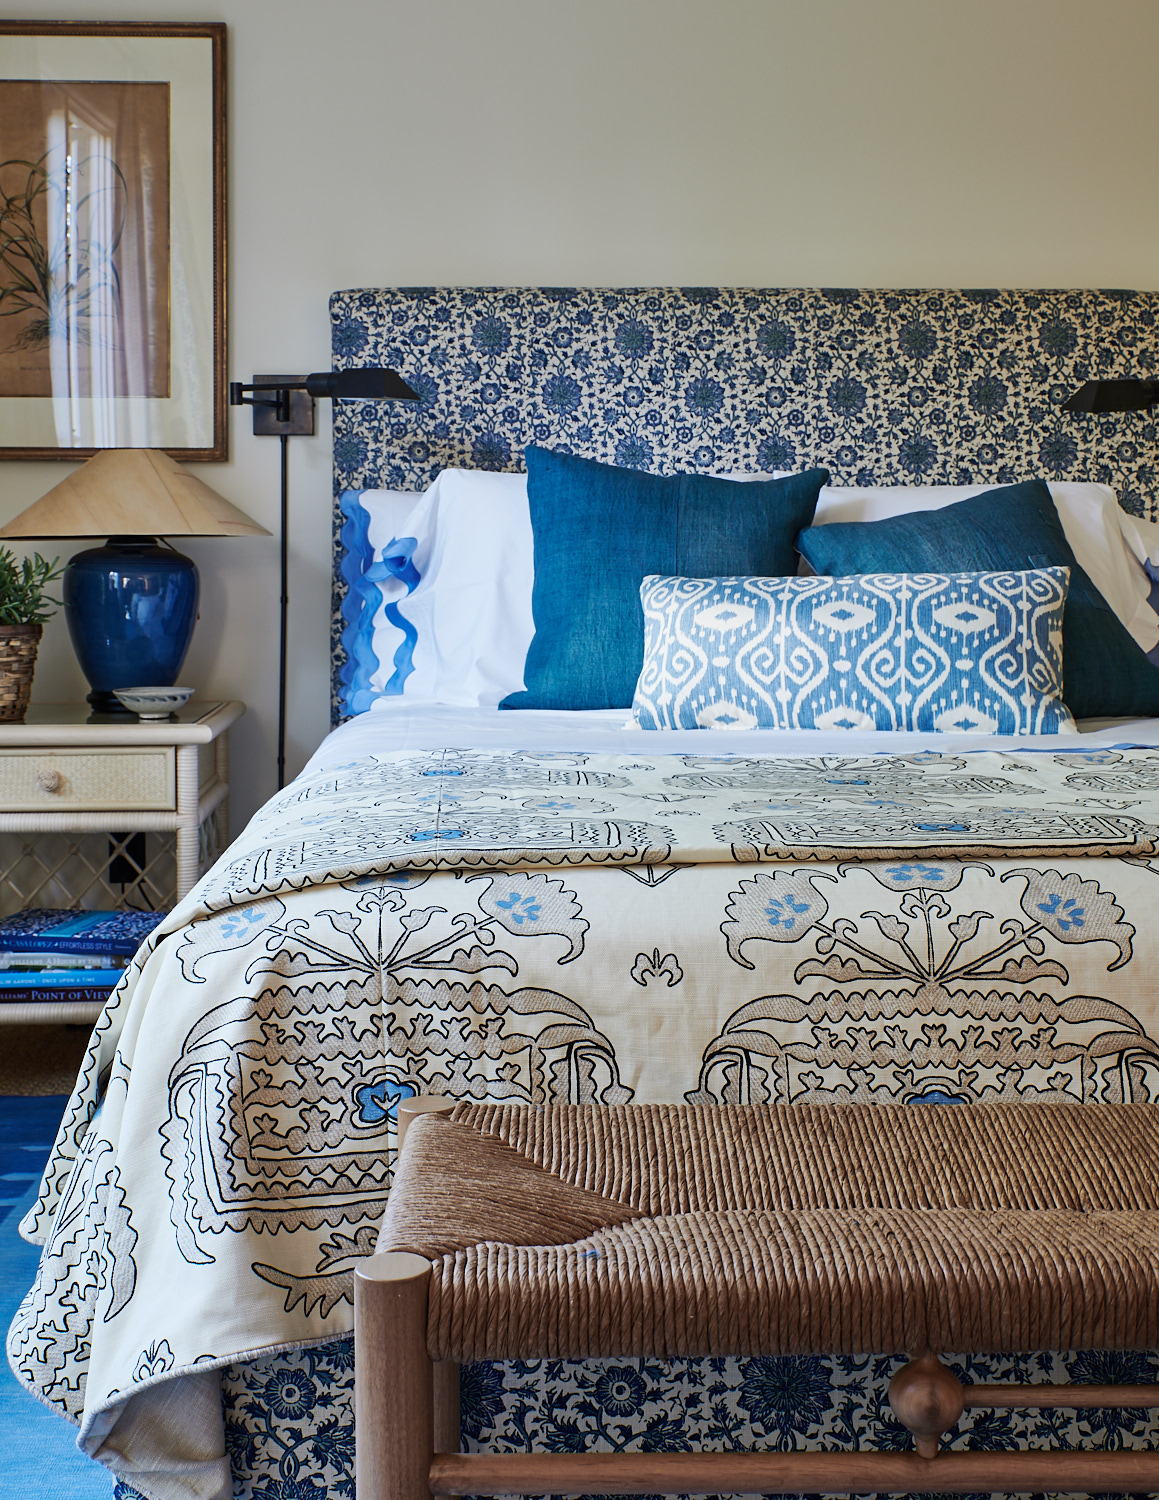 Upholstered bed with custom throw pillows